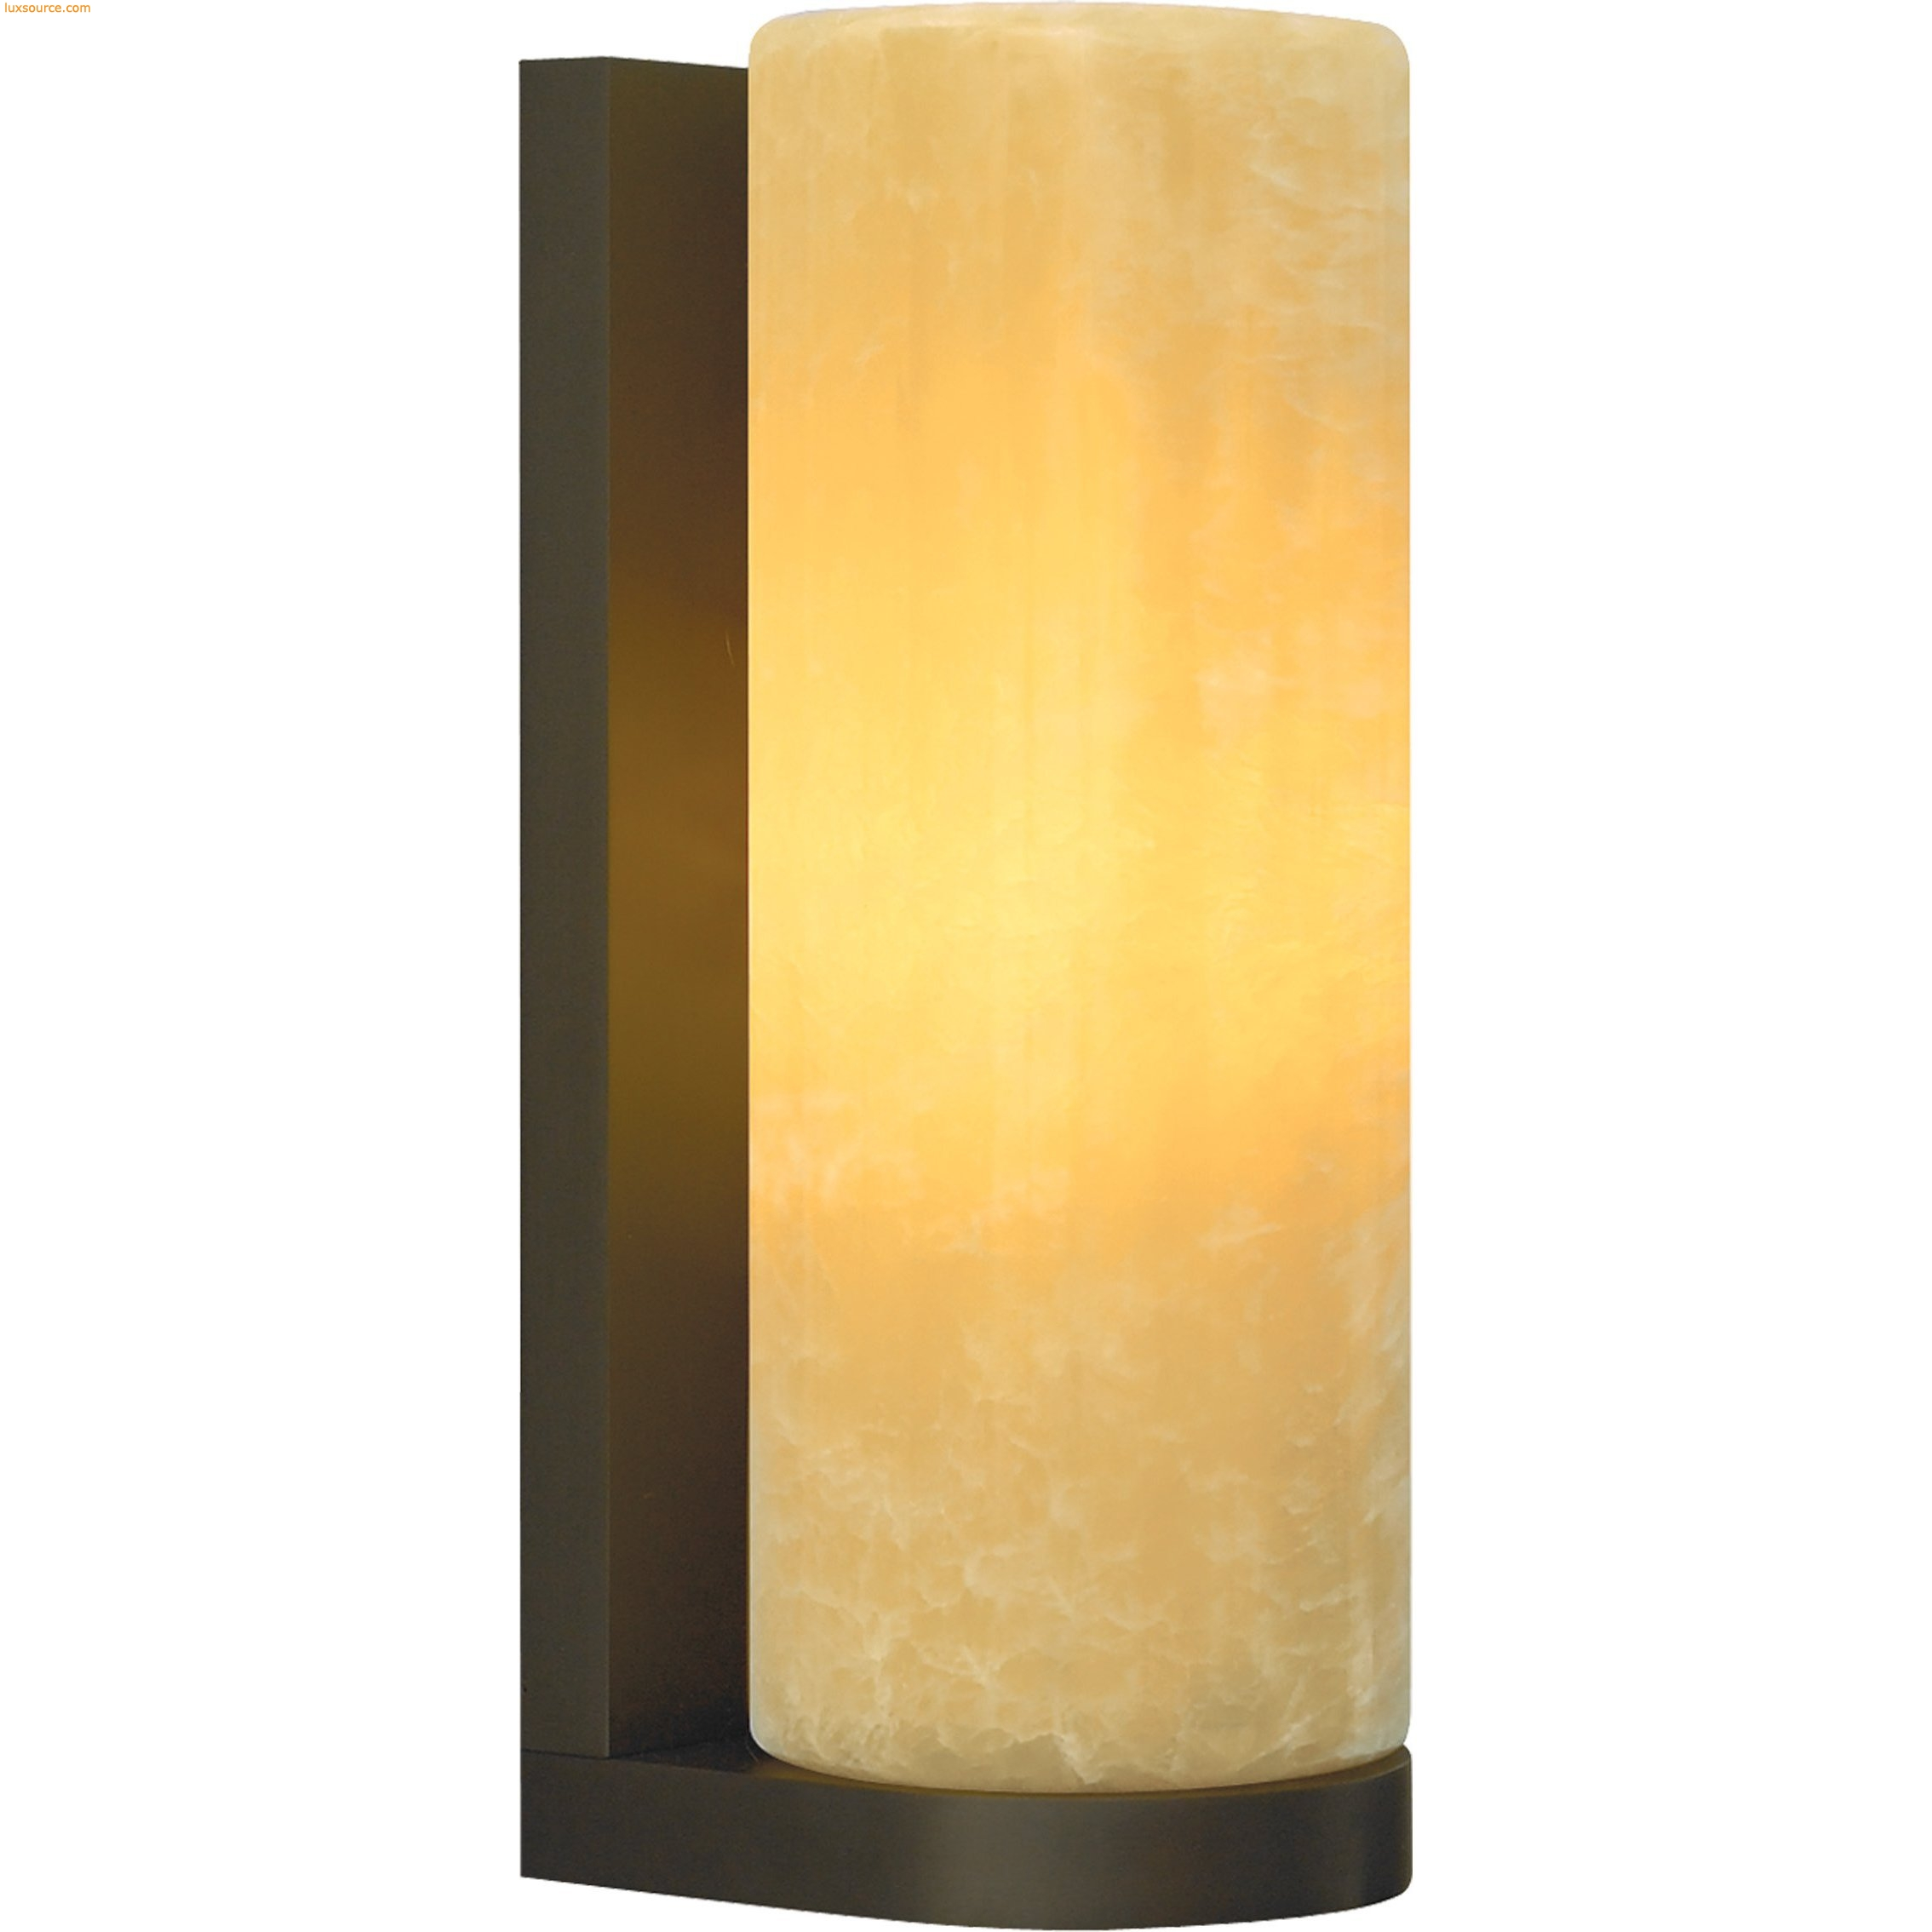 700WSCBOGHZ - Cabo Grande Wall Sconce - Onyx - Incandescent - Lux Source